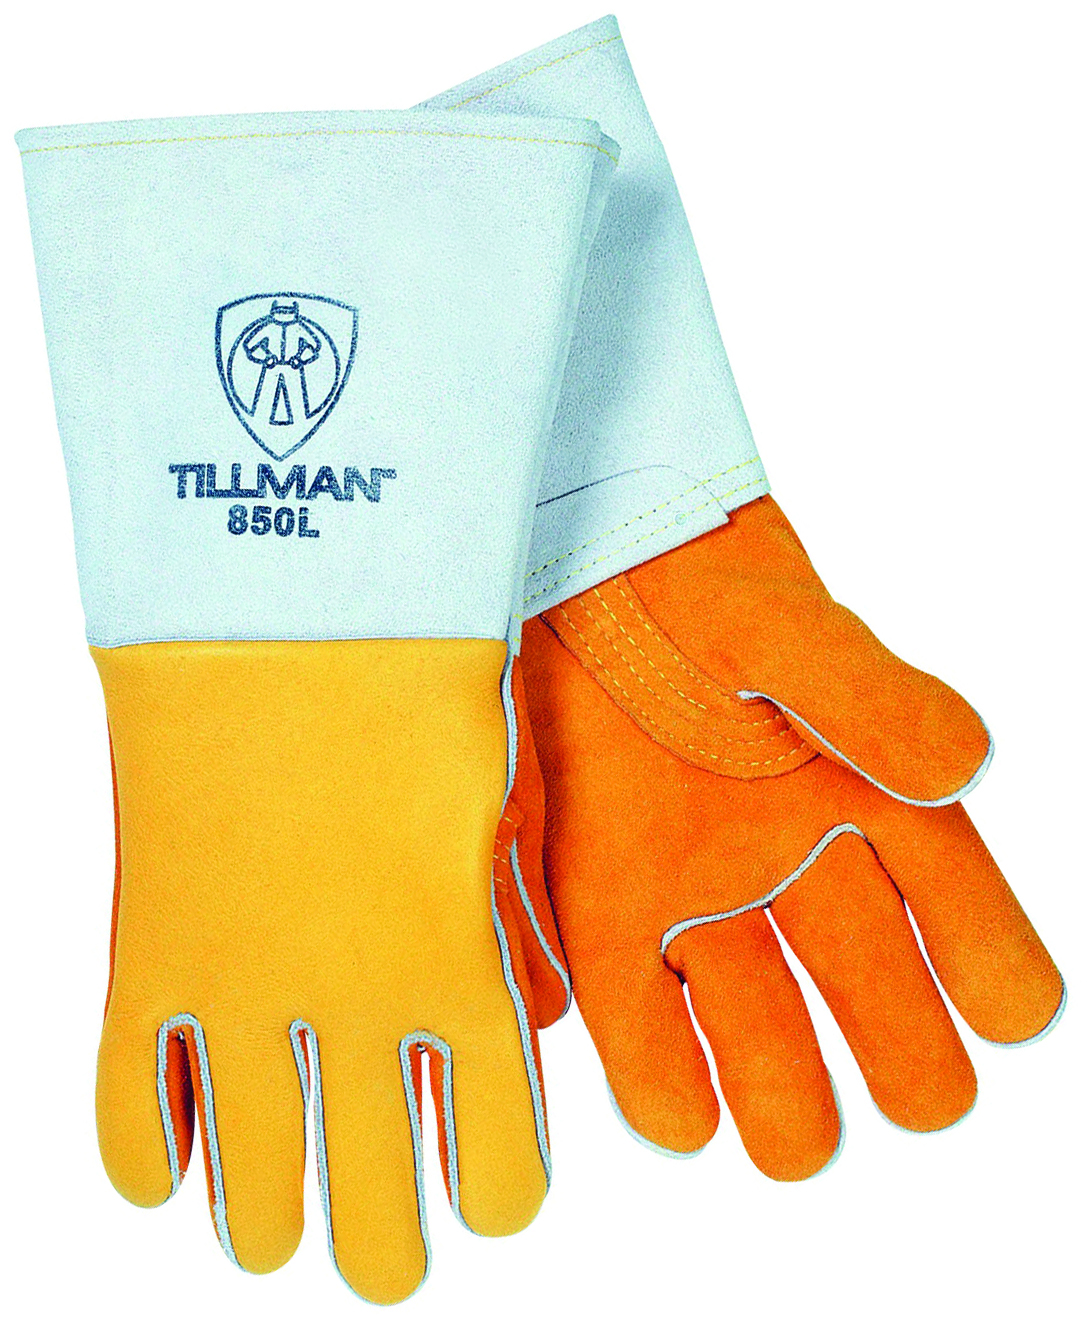 850M - Premium Gold Elkskin Stick Welders Gloves-Medium-Premium Gold Elkskin-Stick Welders Gloves---UOM: 1/PR